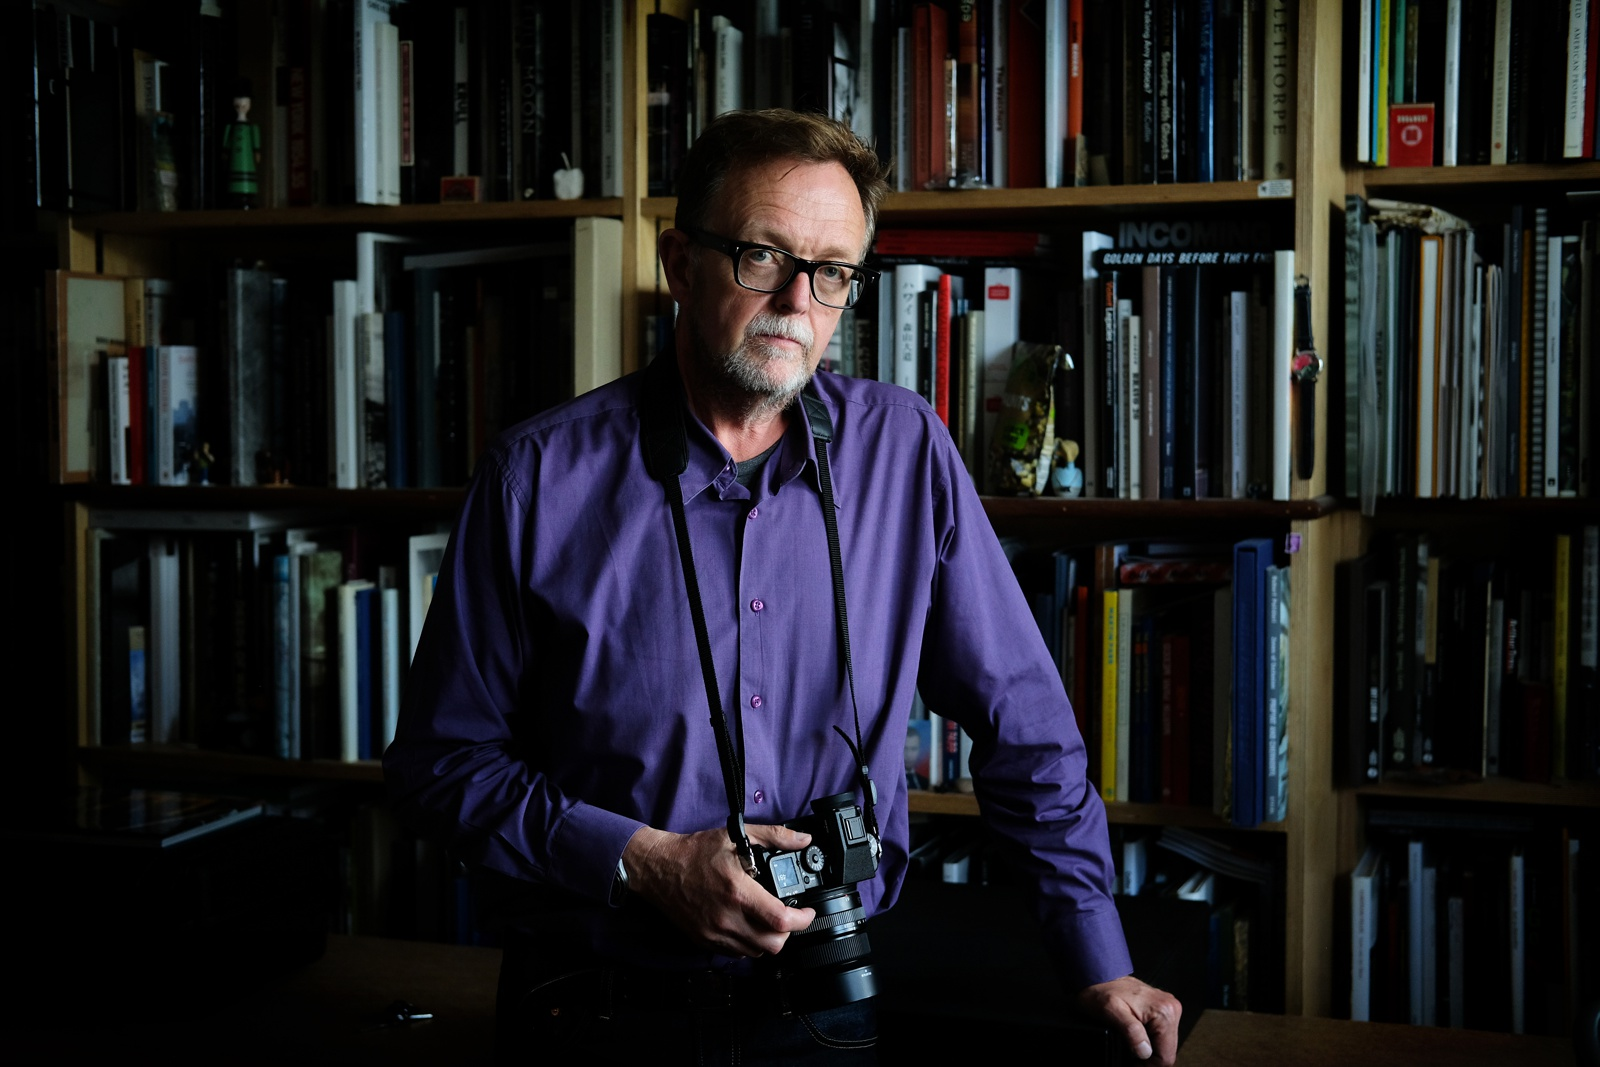 A colour photograph of the Magnum photographer Mark Power made by Neale James Breathe Pictures